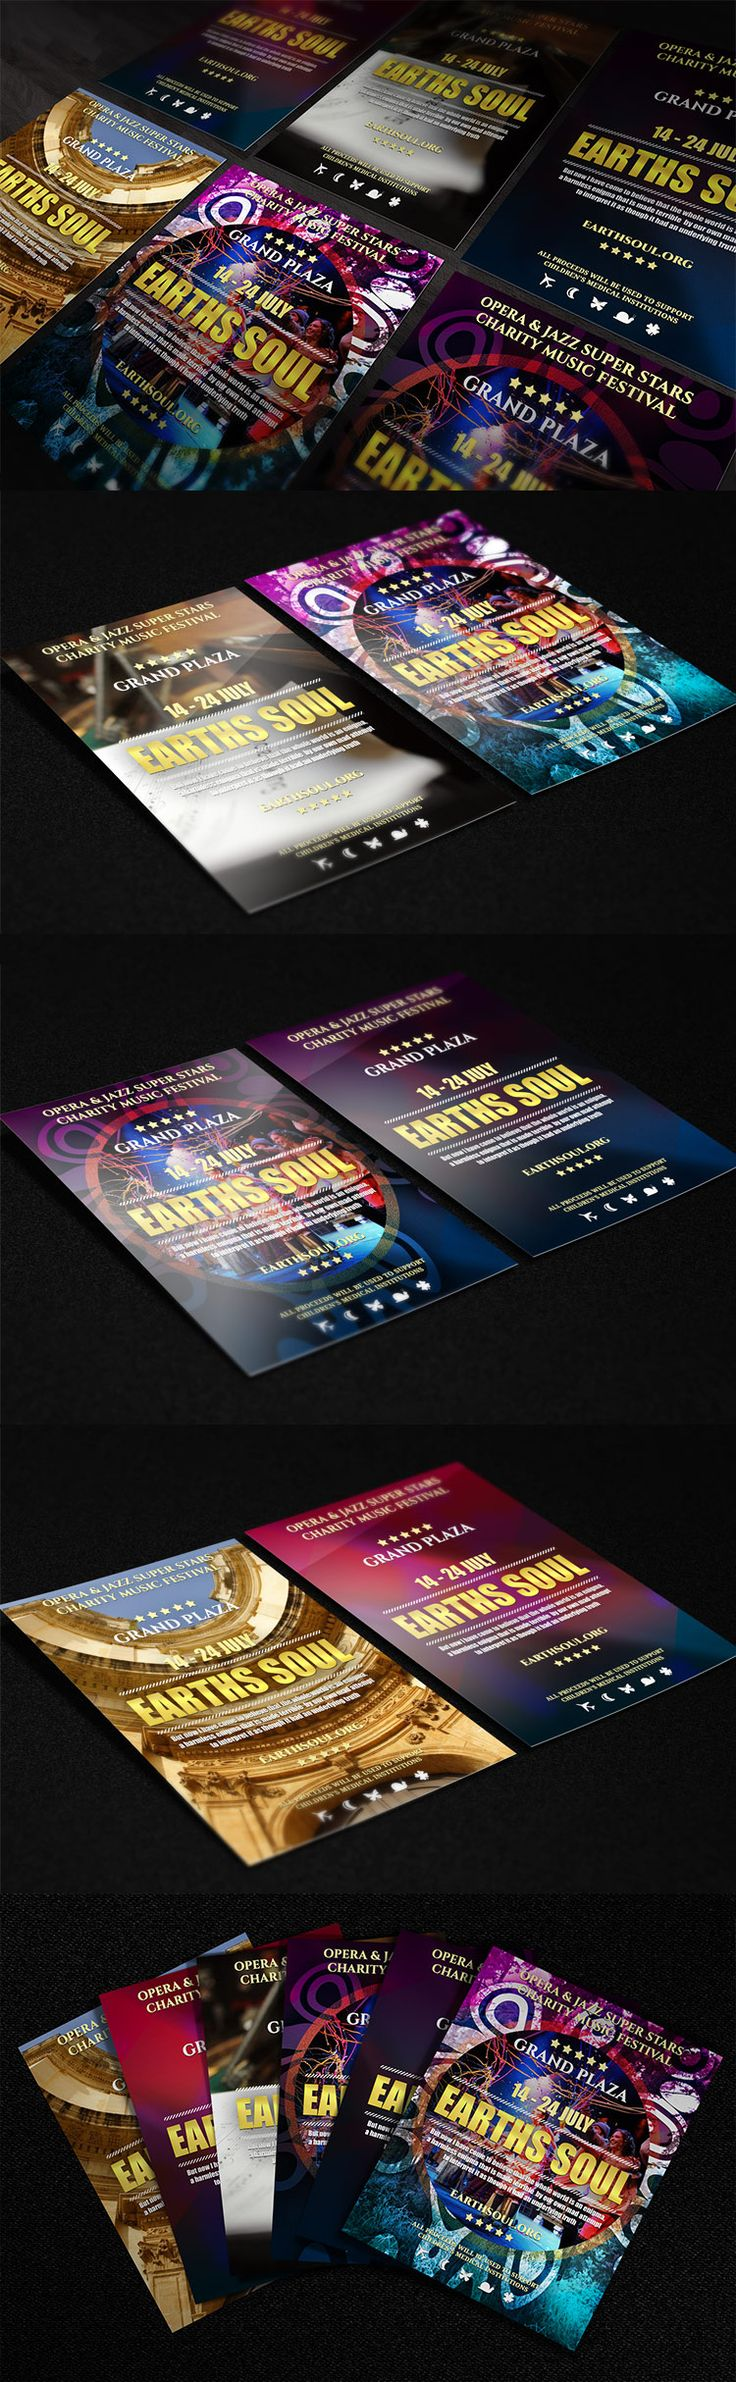 High Quality PSD Flyer Template. Fully Customizable PSD Template & Print Ready Used Free Public License pictures from pixabay.com and Free Google Font For more details see credits.txt file For Preview used Free Carlos Viloria Mock-Up